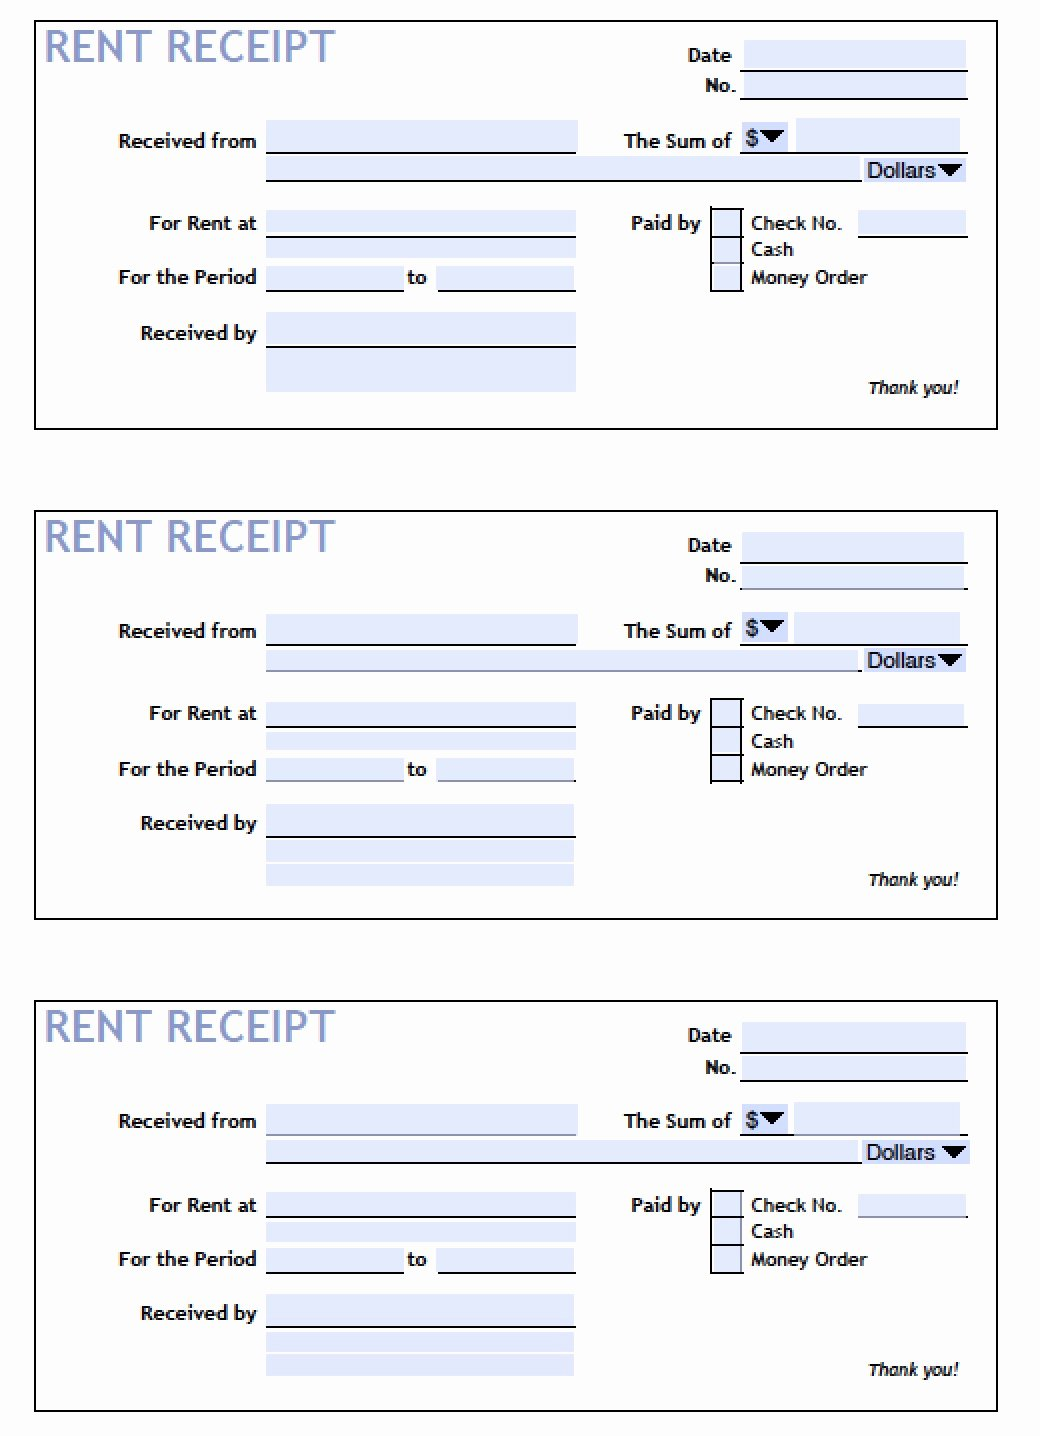 Printable Rent Receipt Template Luxury Download Printable Rent Receipt Templates Pdf